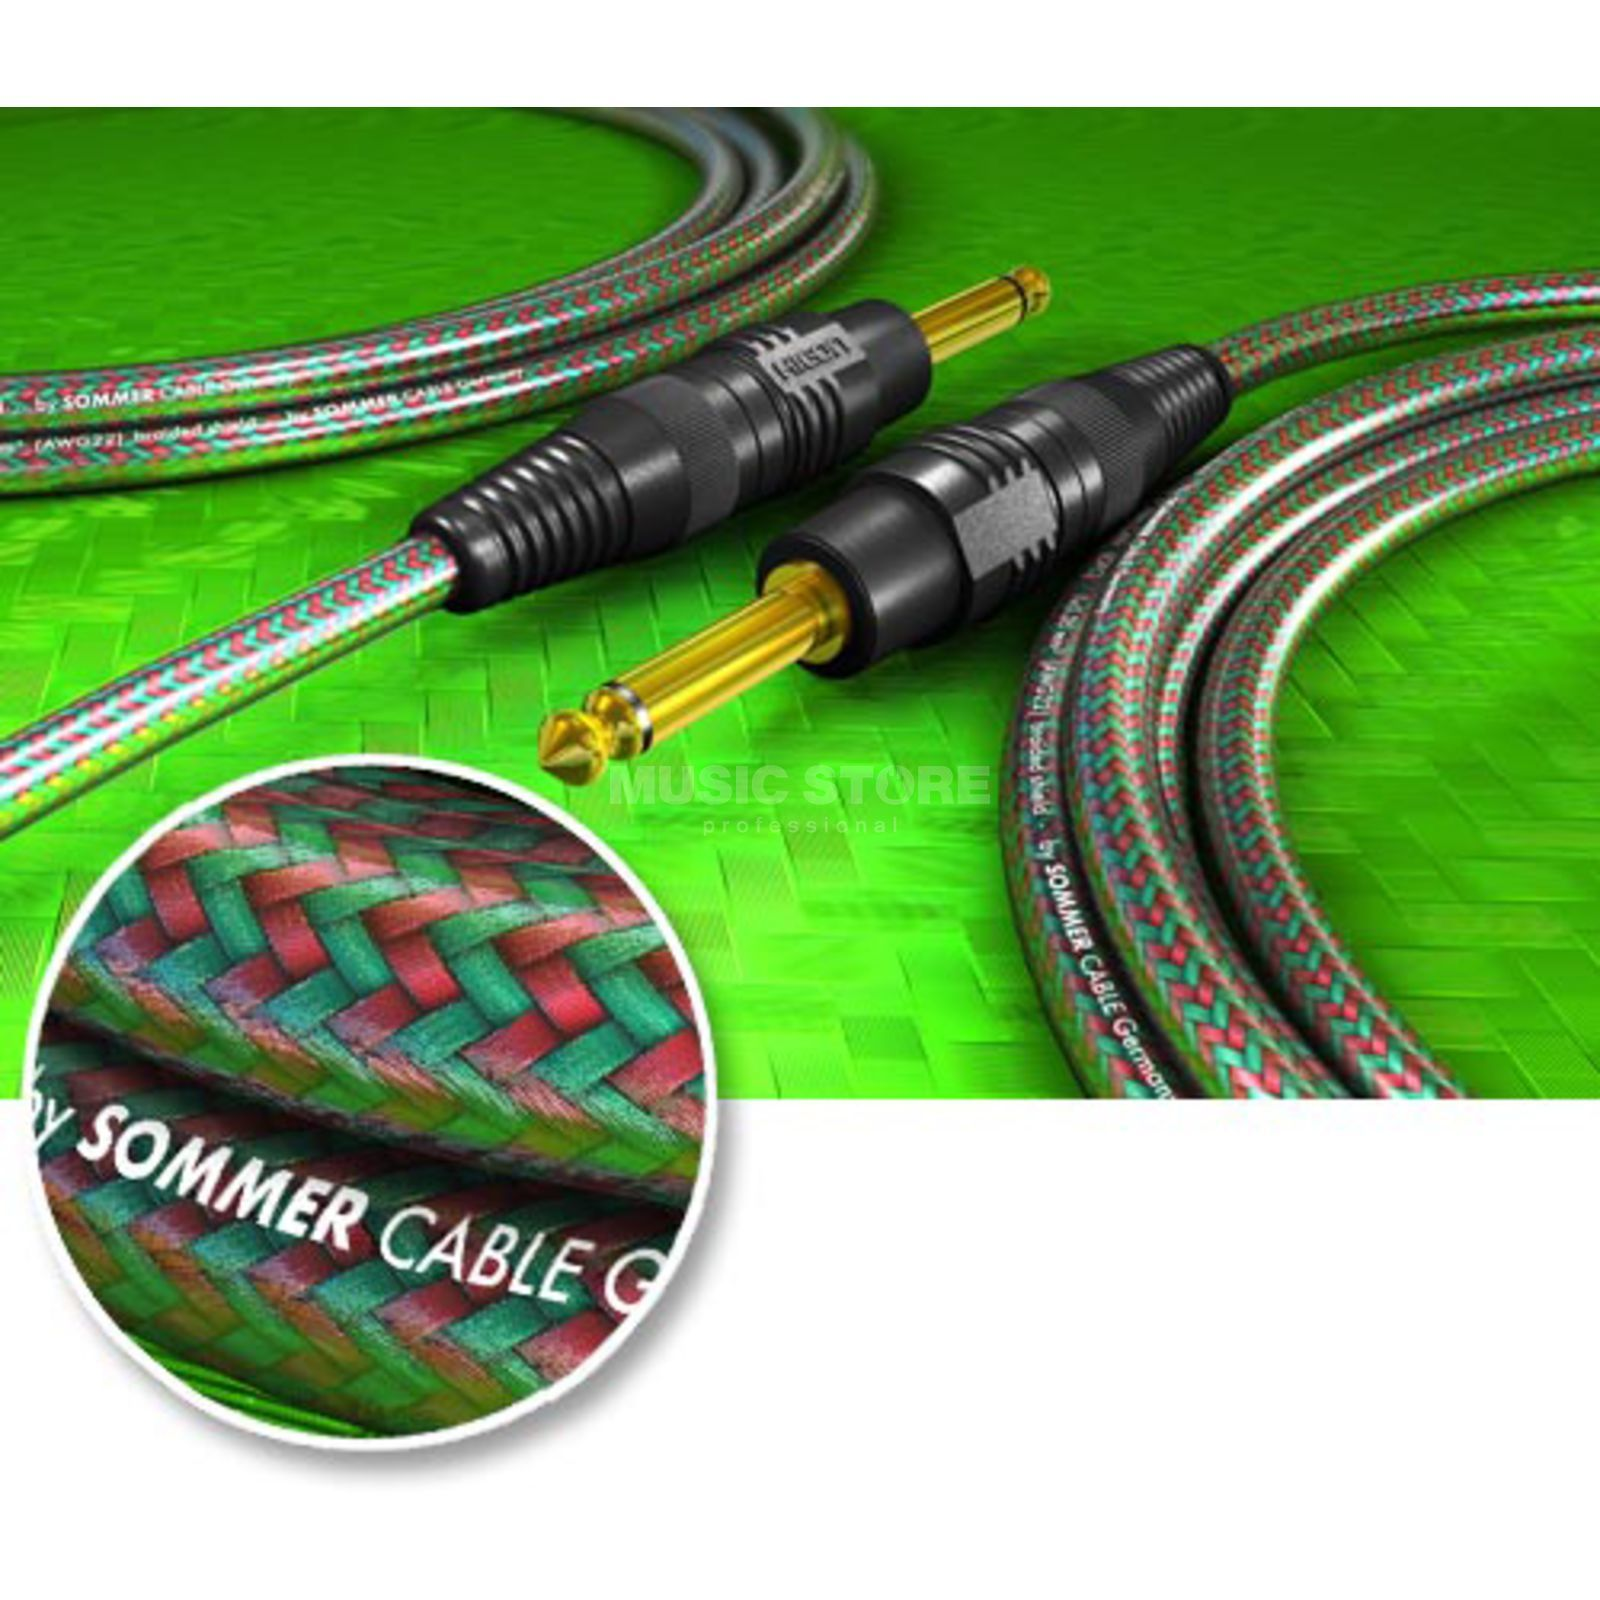 Sommer Cable Instr.-Kabel GRINDYCOP 3m HICON, GBGV-0300 Produktbild